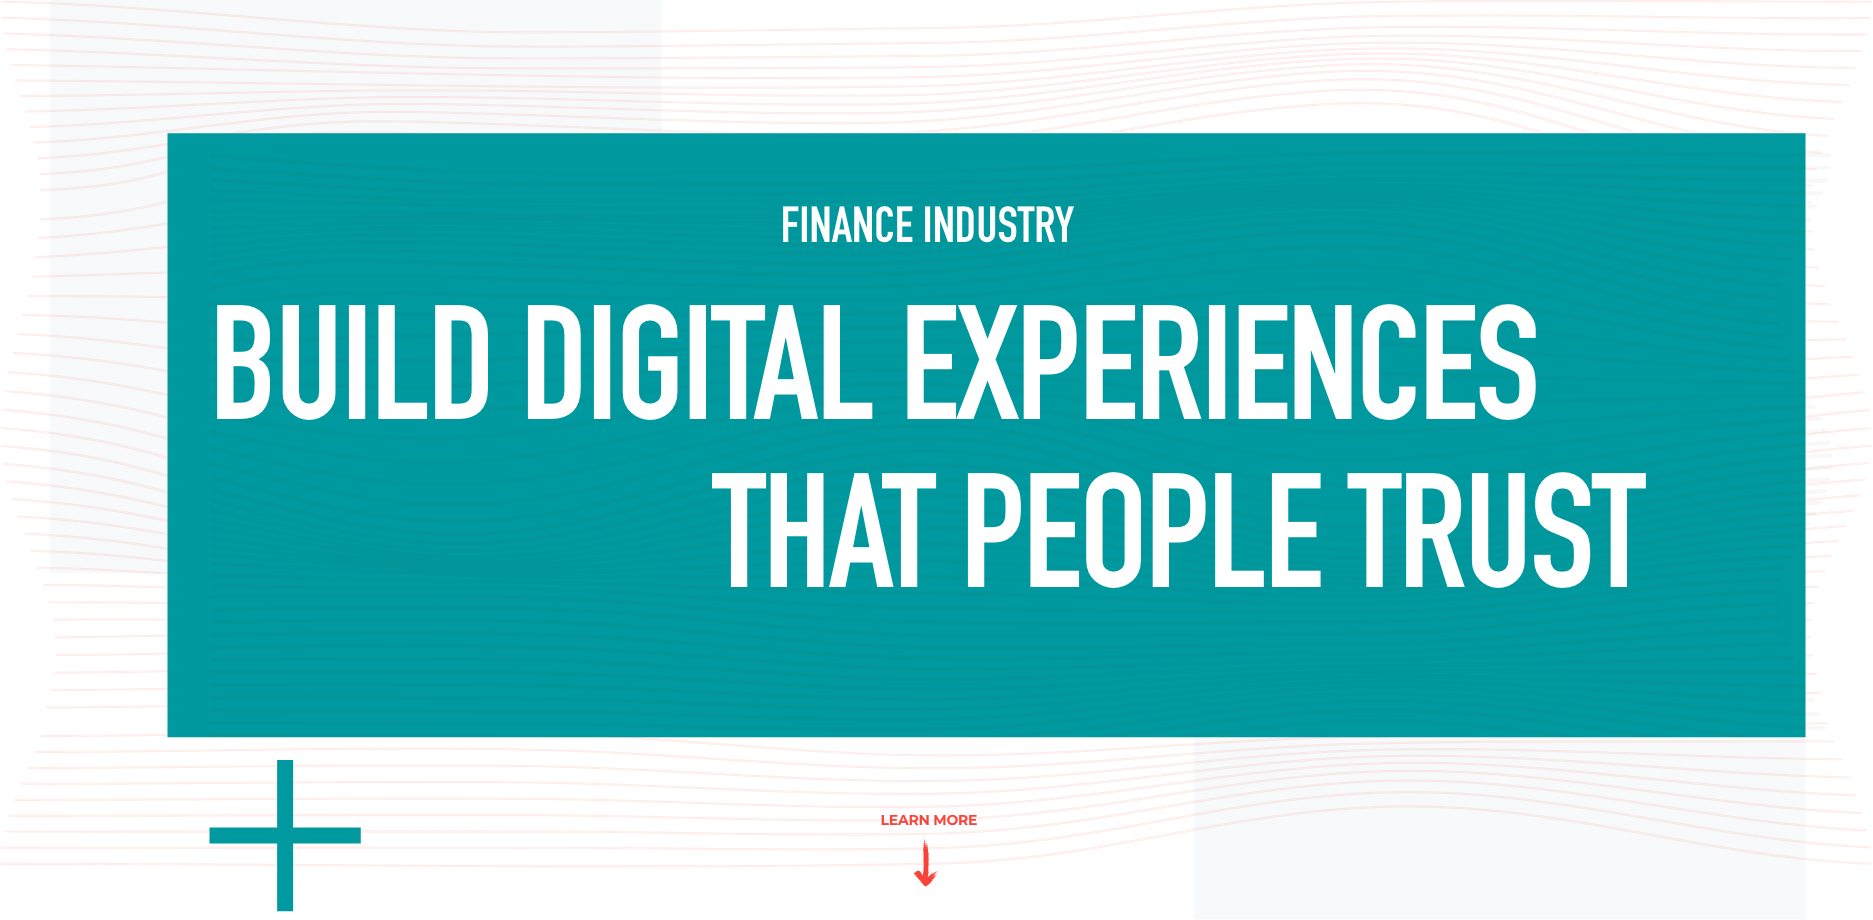 Build Digital Experiences That People Trust